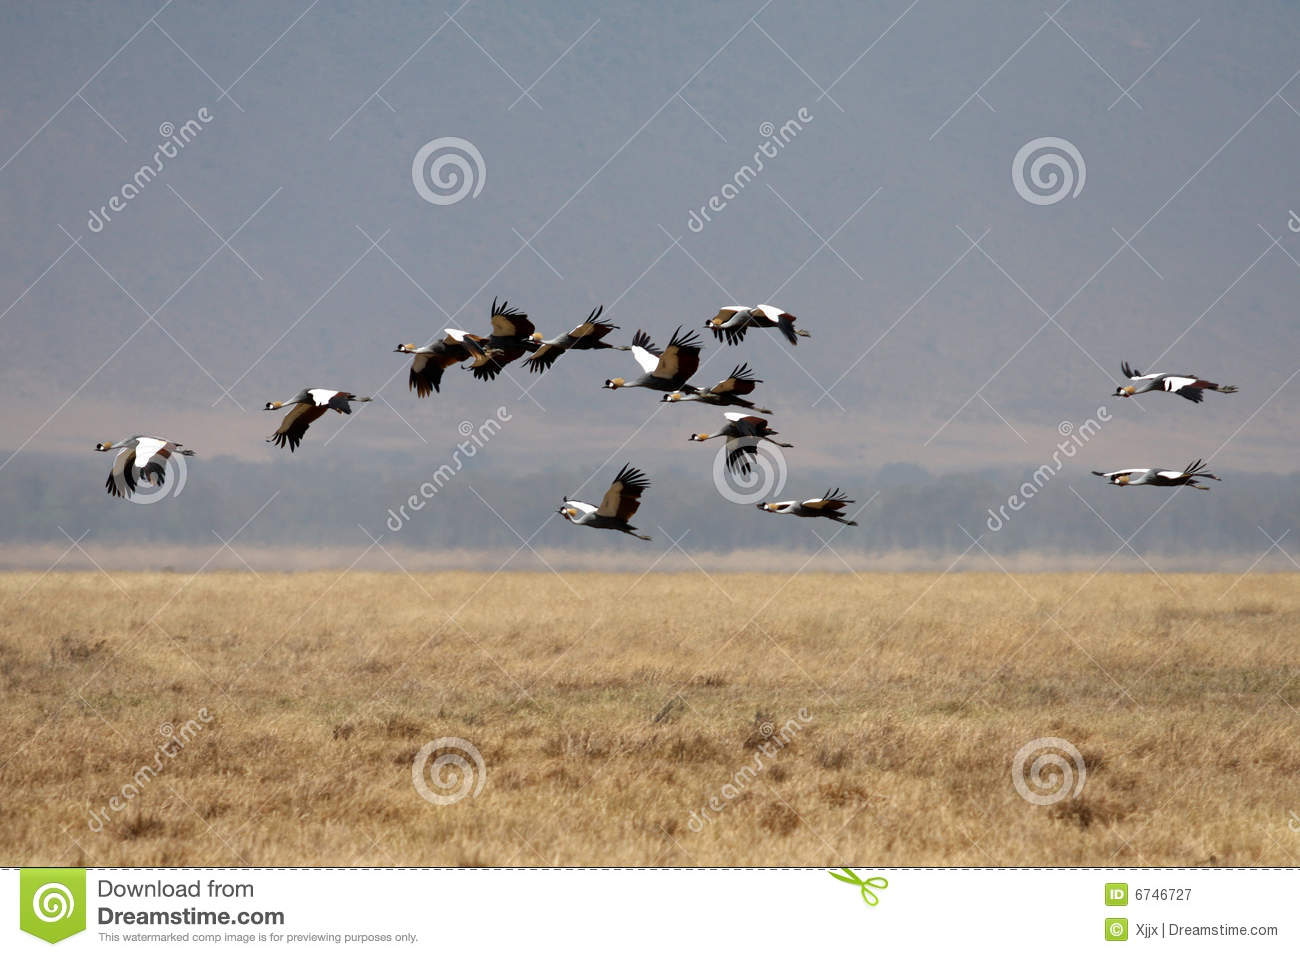 Royalty Free Stock Photography Many Flying Birds Africa Savanna Image6...